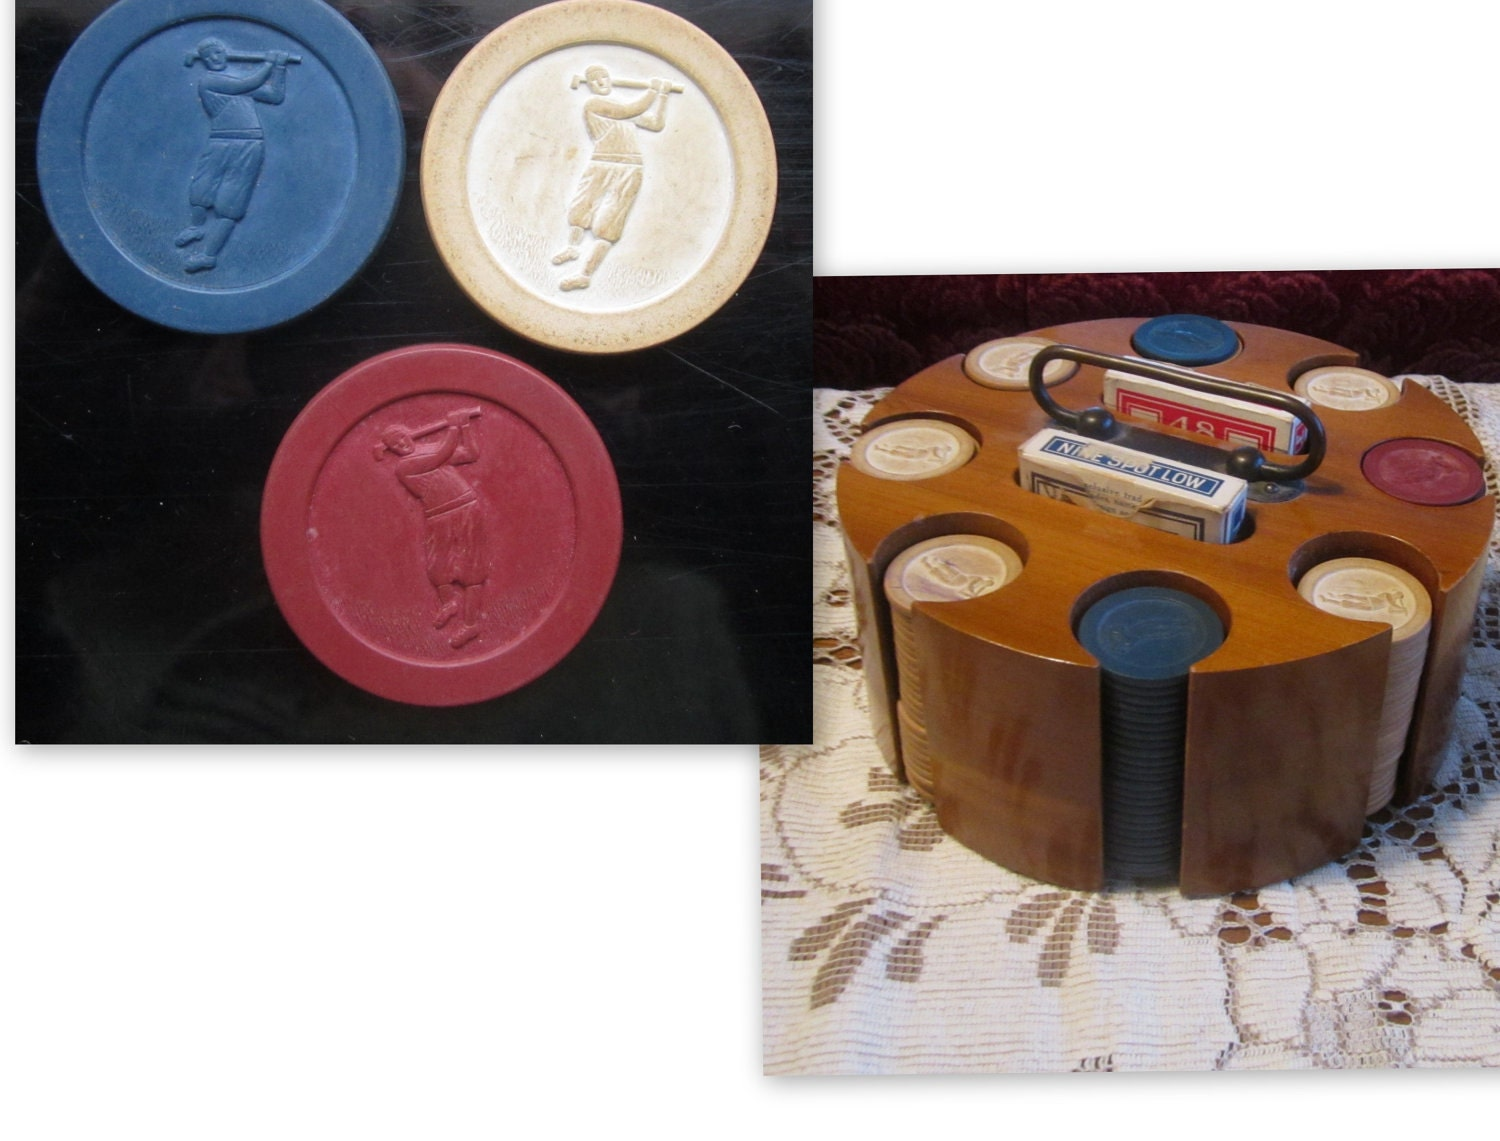 vintage poker chip set